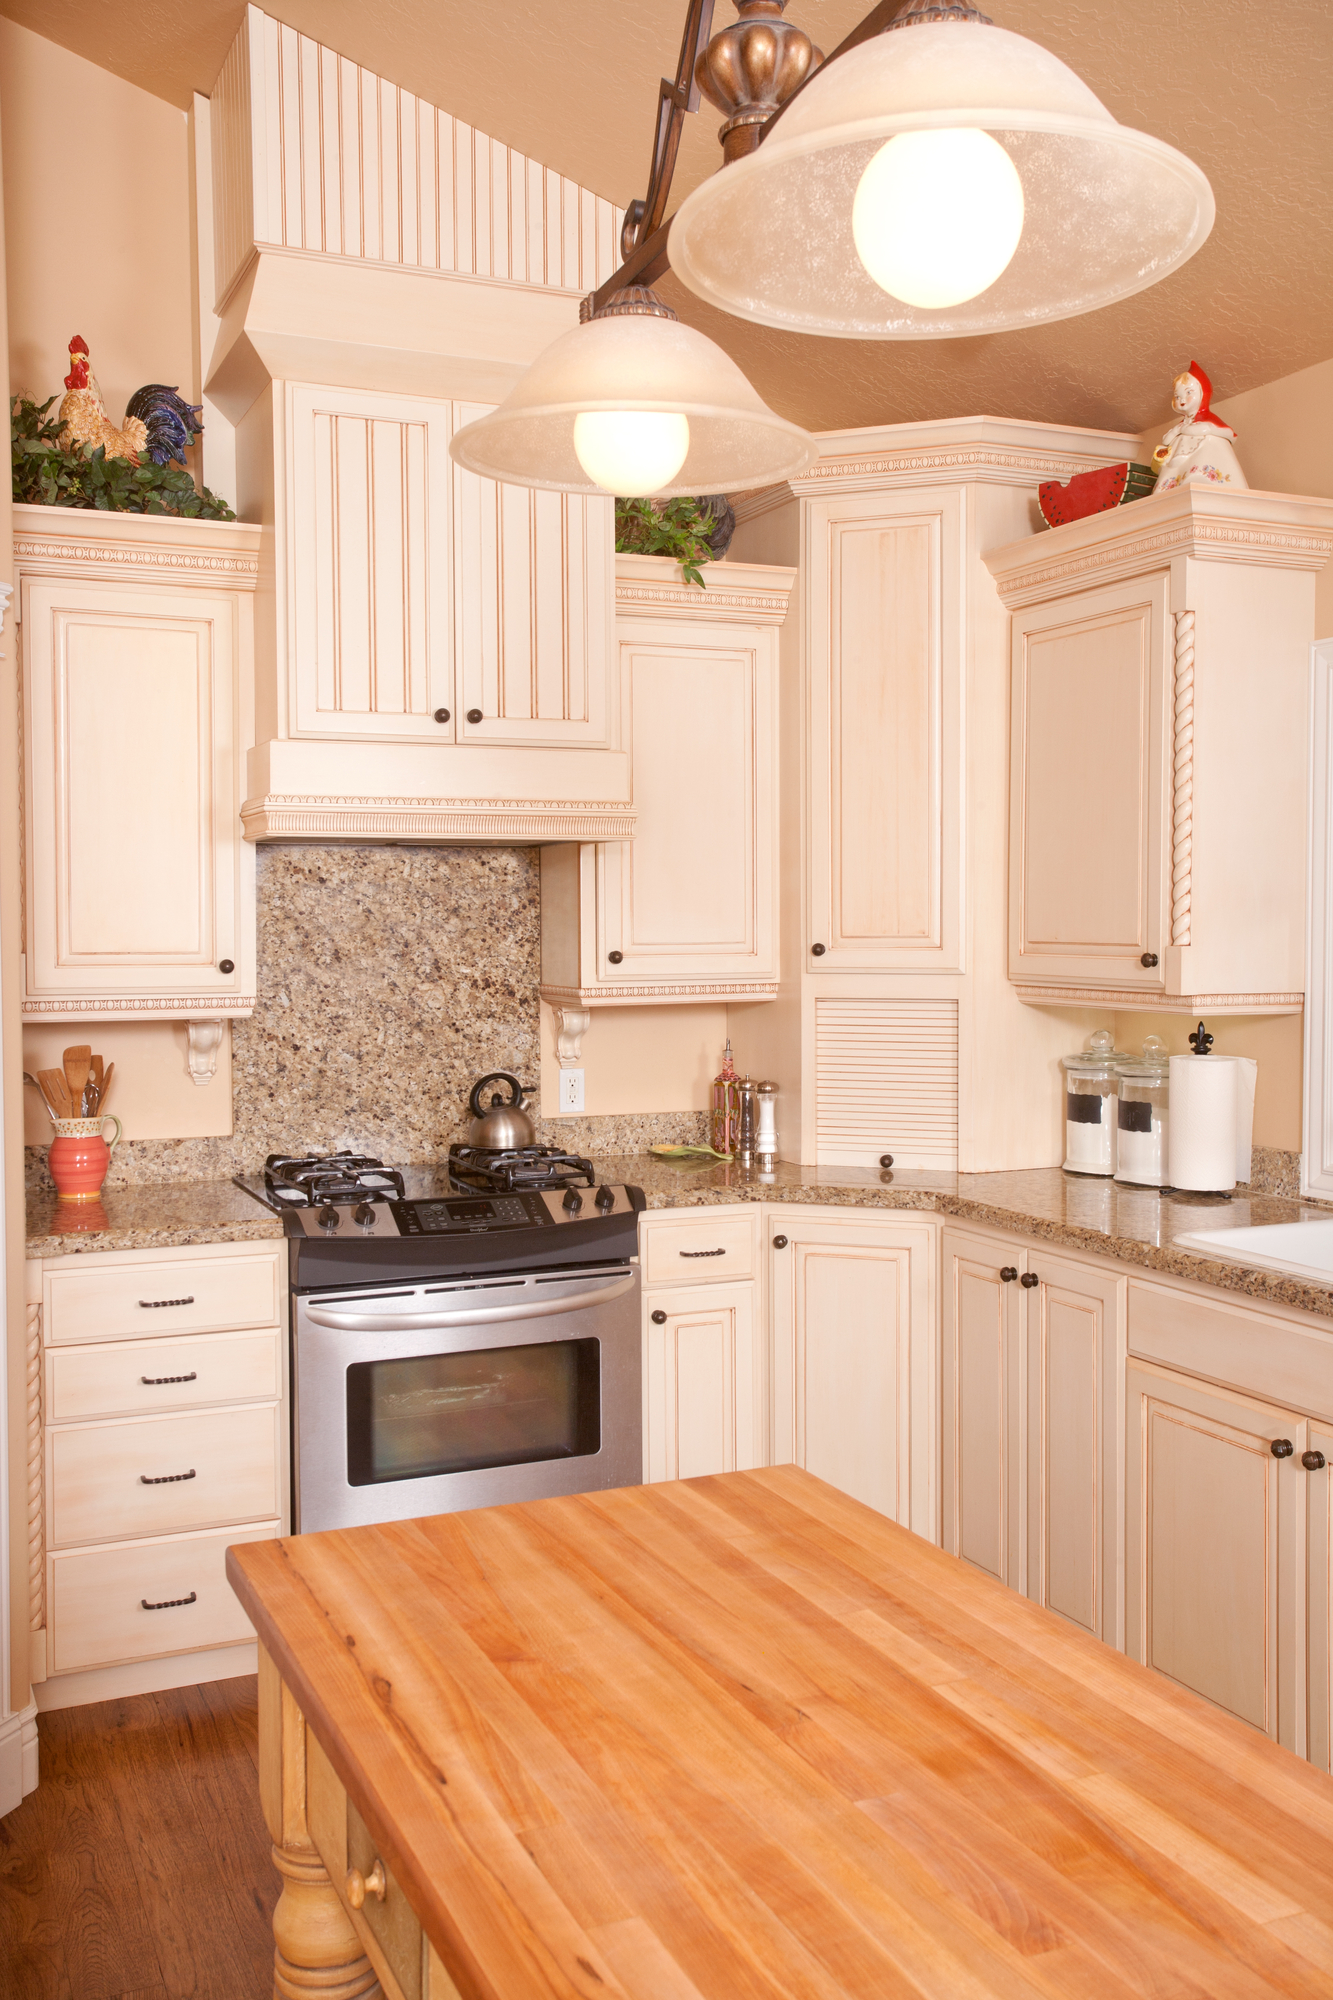 Http Nearsay Com C 209506 154883 Deck The Halls 3 Ways To Update Your Countertops For The Holidays